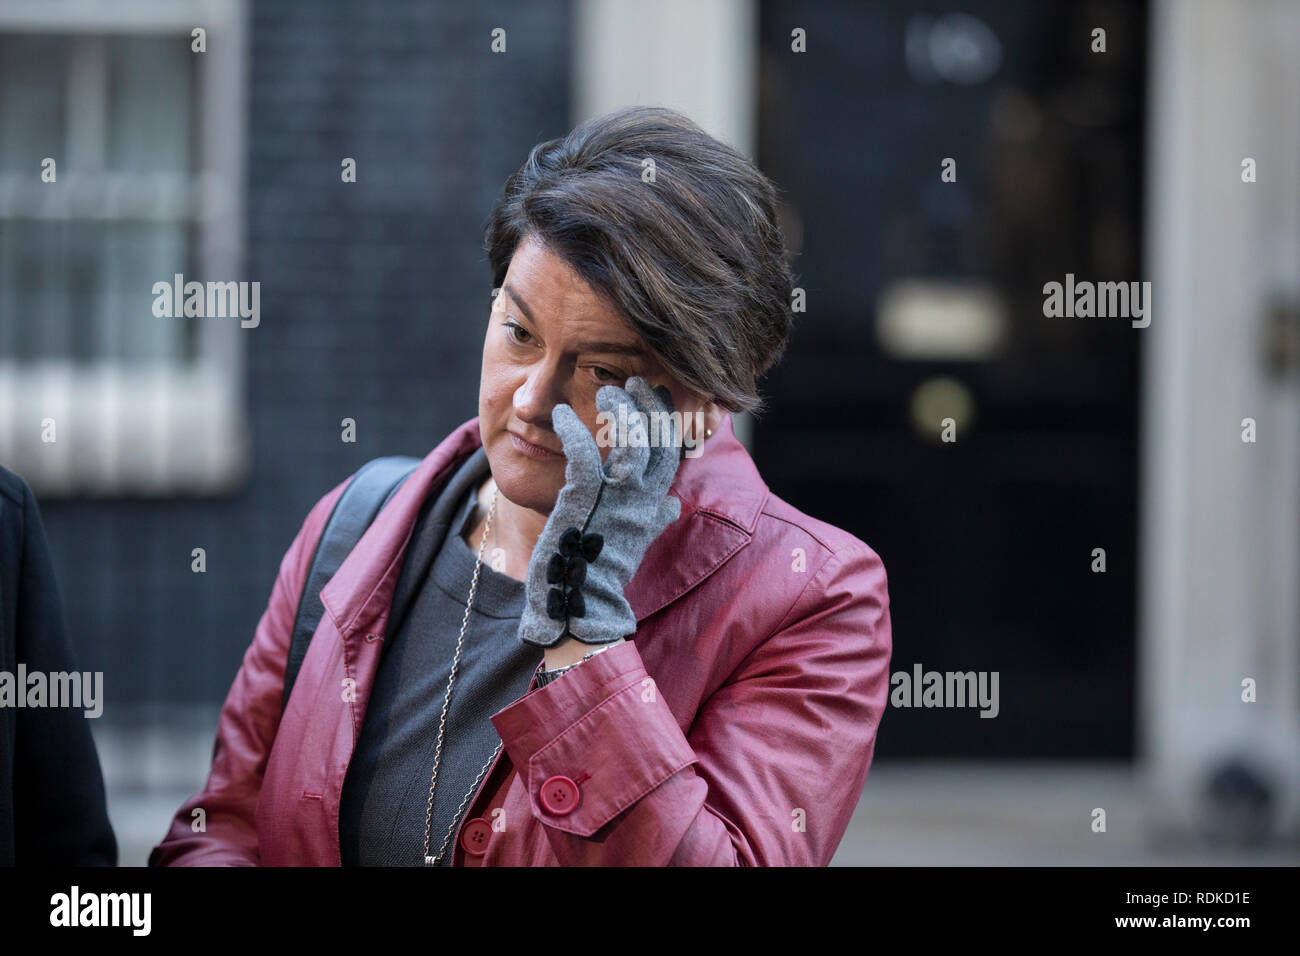 Arlene Foster, Northern Ireland politician and leader of the Democratic Unionist Party outside No.10 Downing Street, Whitehall, London, England, UK - Stock Image